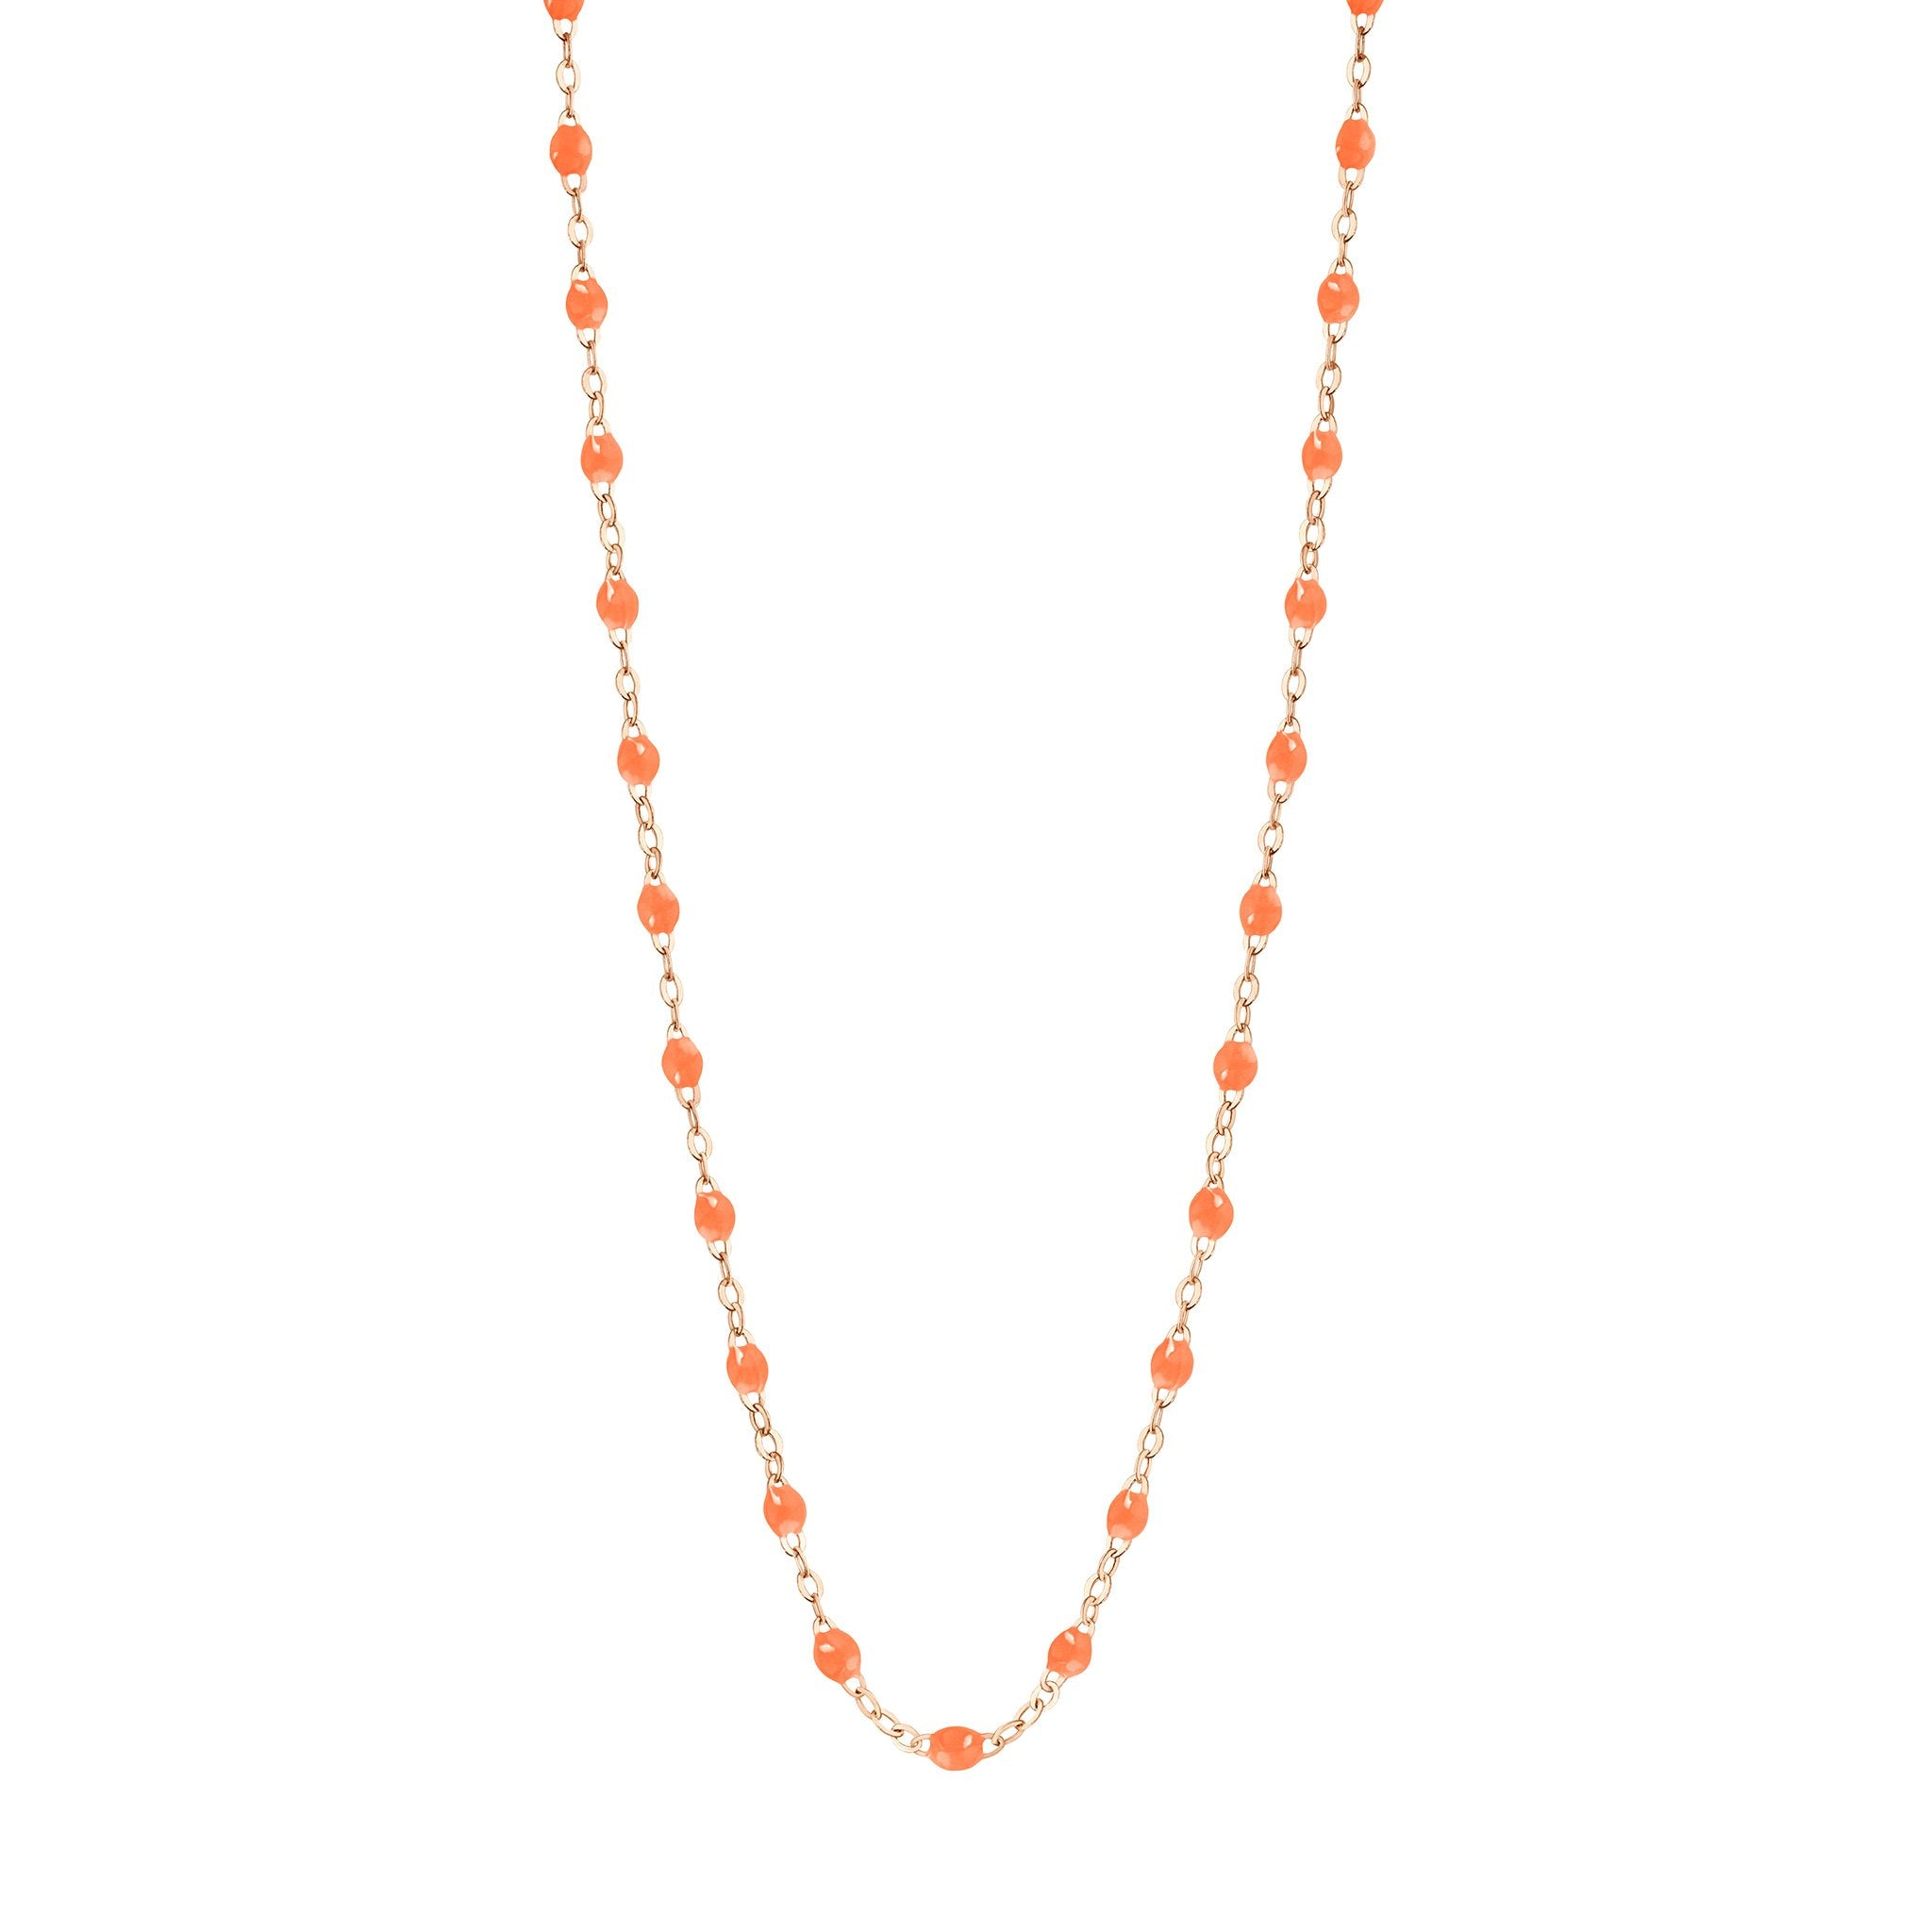 Gigi Clozeau - Classic Gigi Orange necklace, Rose Gold, 17.7""